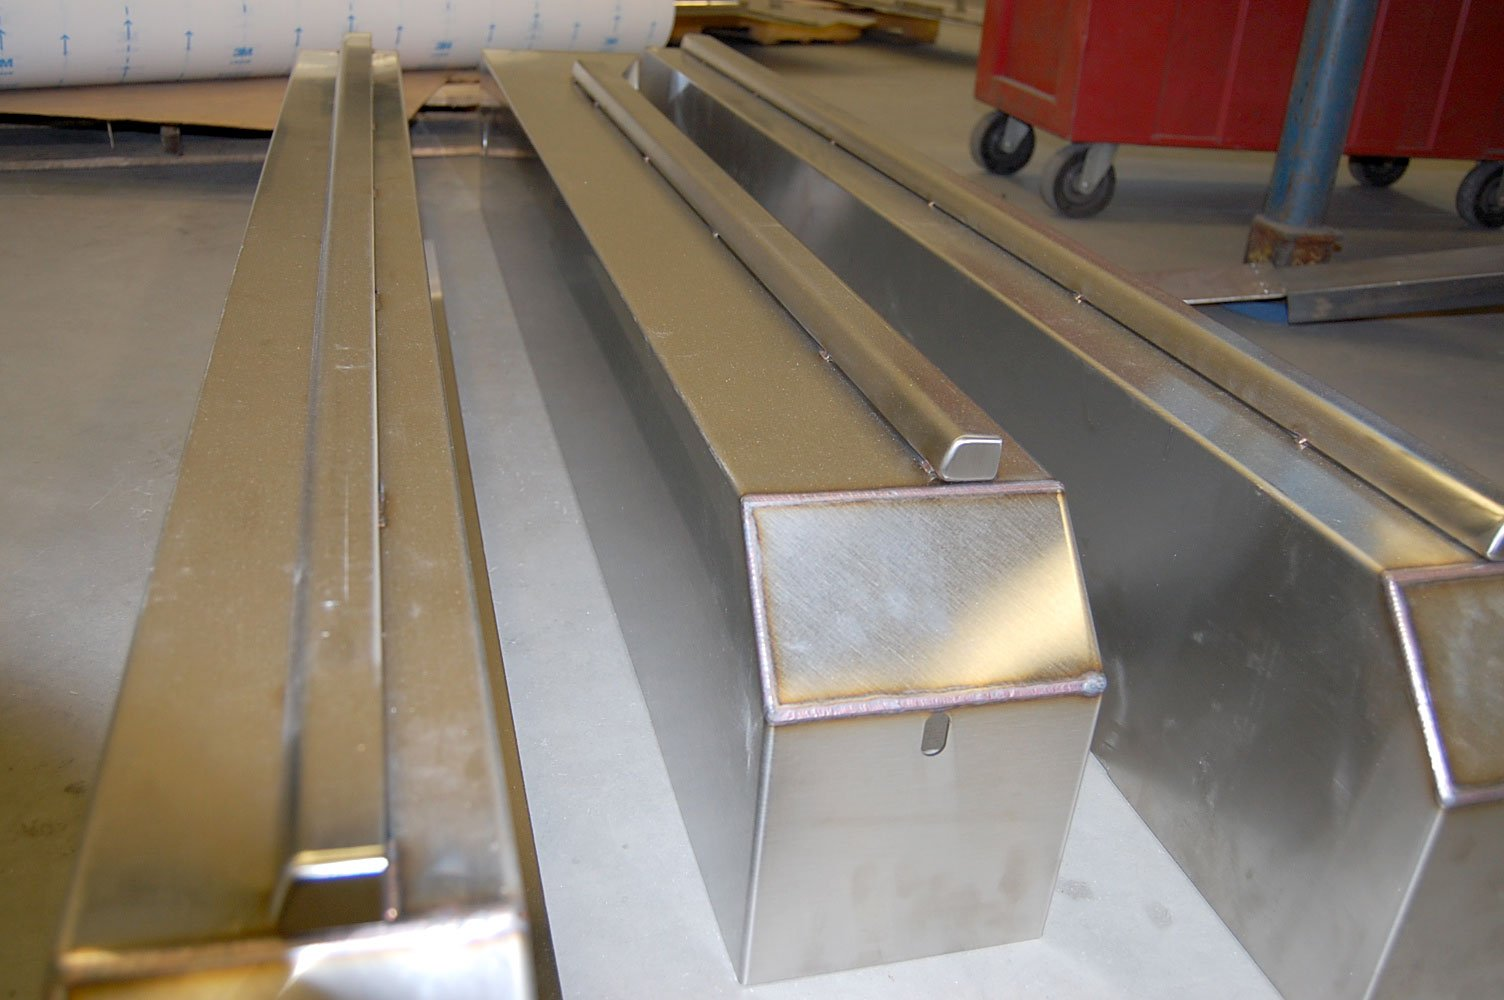 Packaging components are essential to success of larger machines